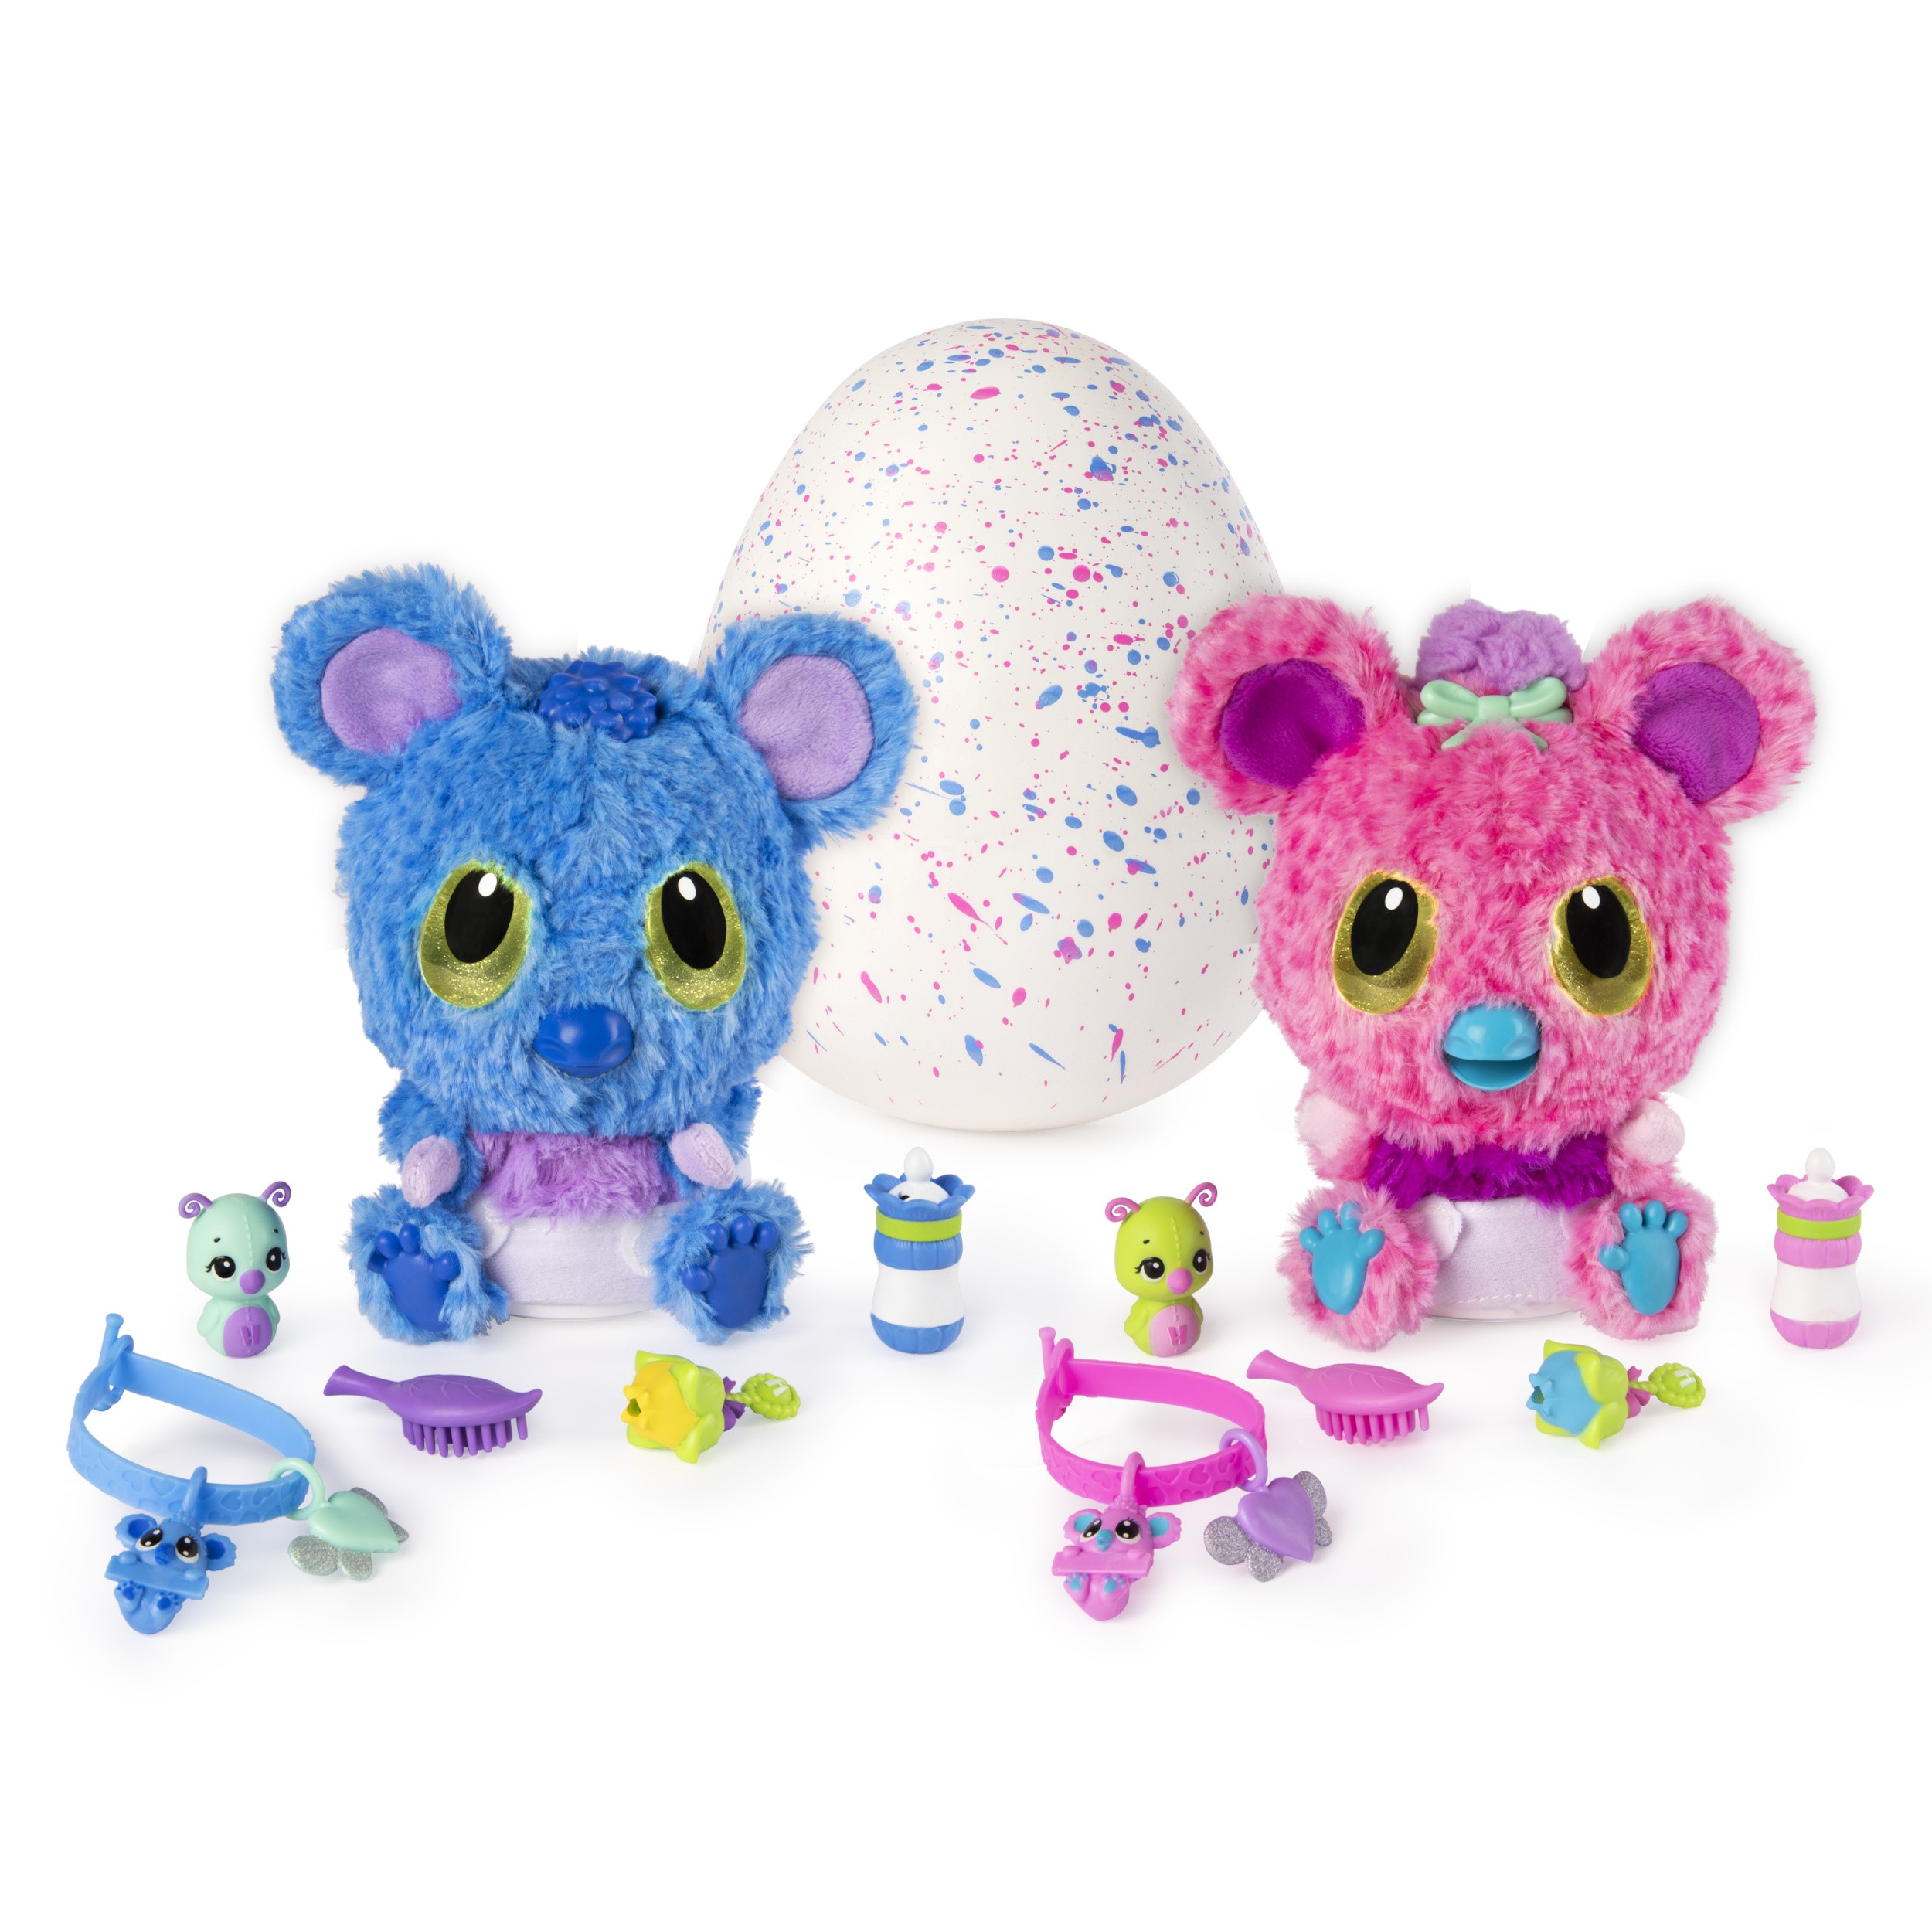 Hatchimal, hatchibabies koalabee, hatching egg with interactive pet baby (styles may vary), walmart exclusive, for ages 5 and up